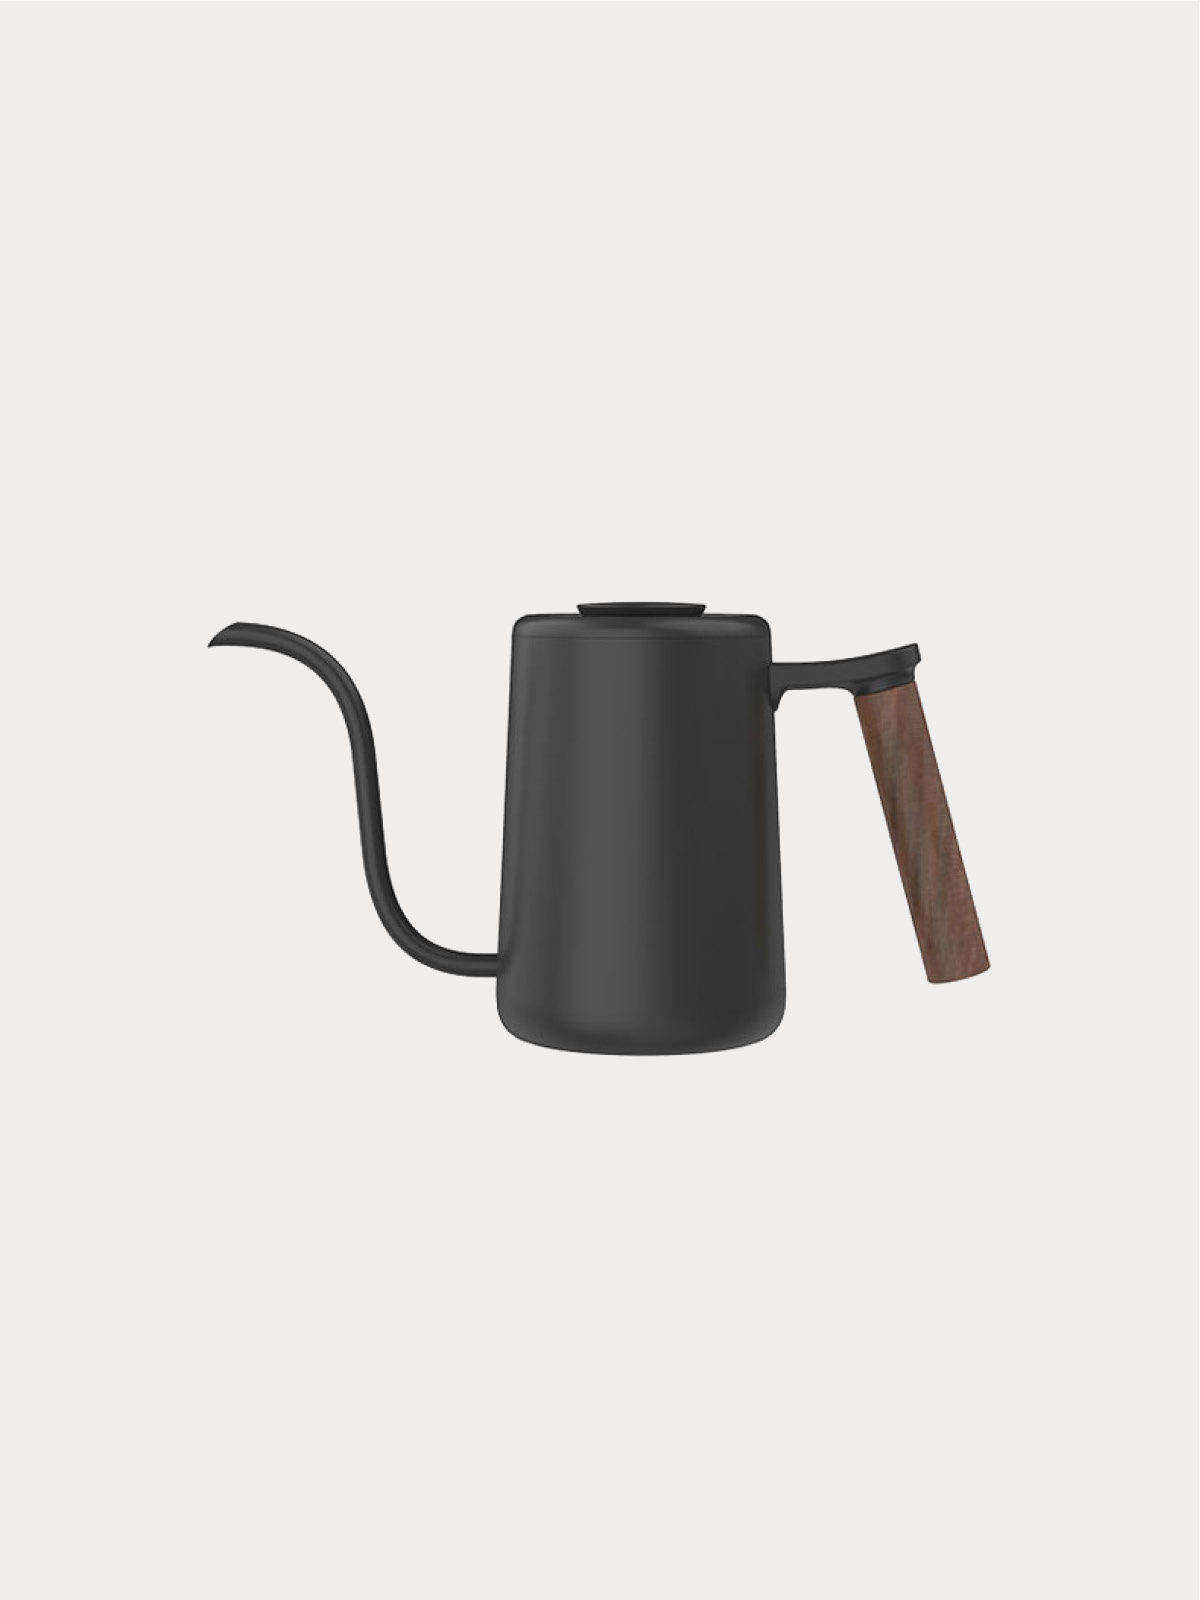 Timemore Fish Youth Pourover Kettle